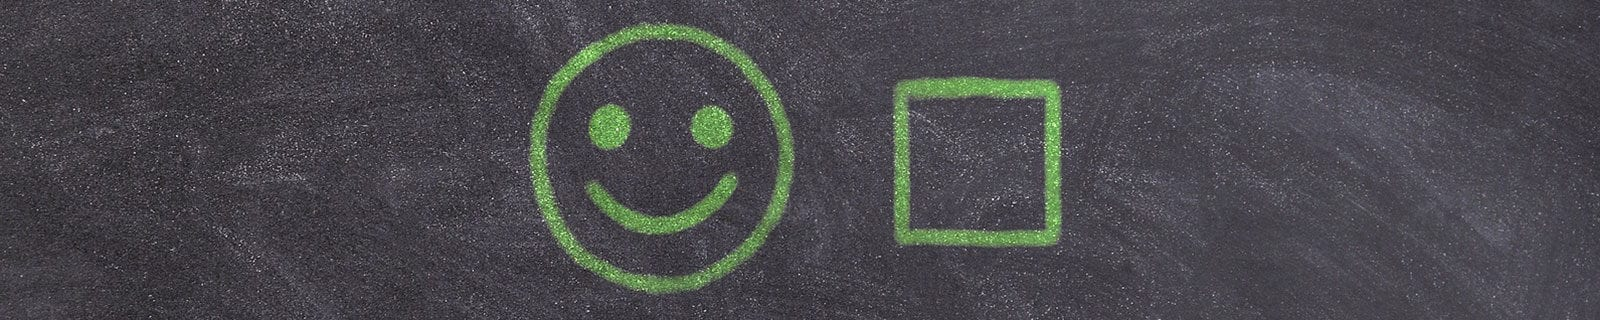 Green smiley face with checkbox